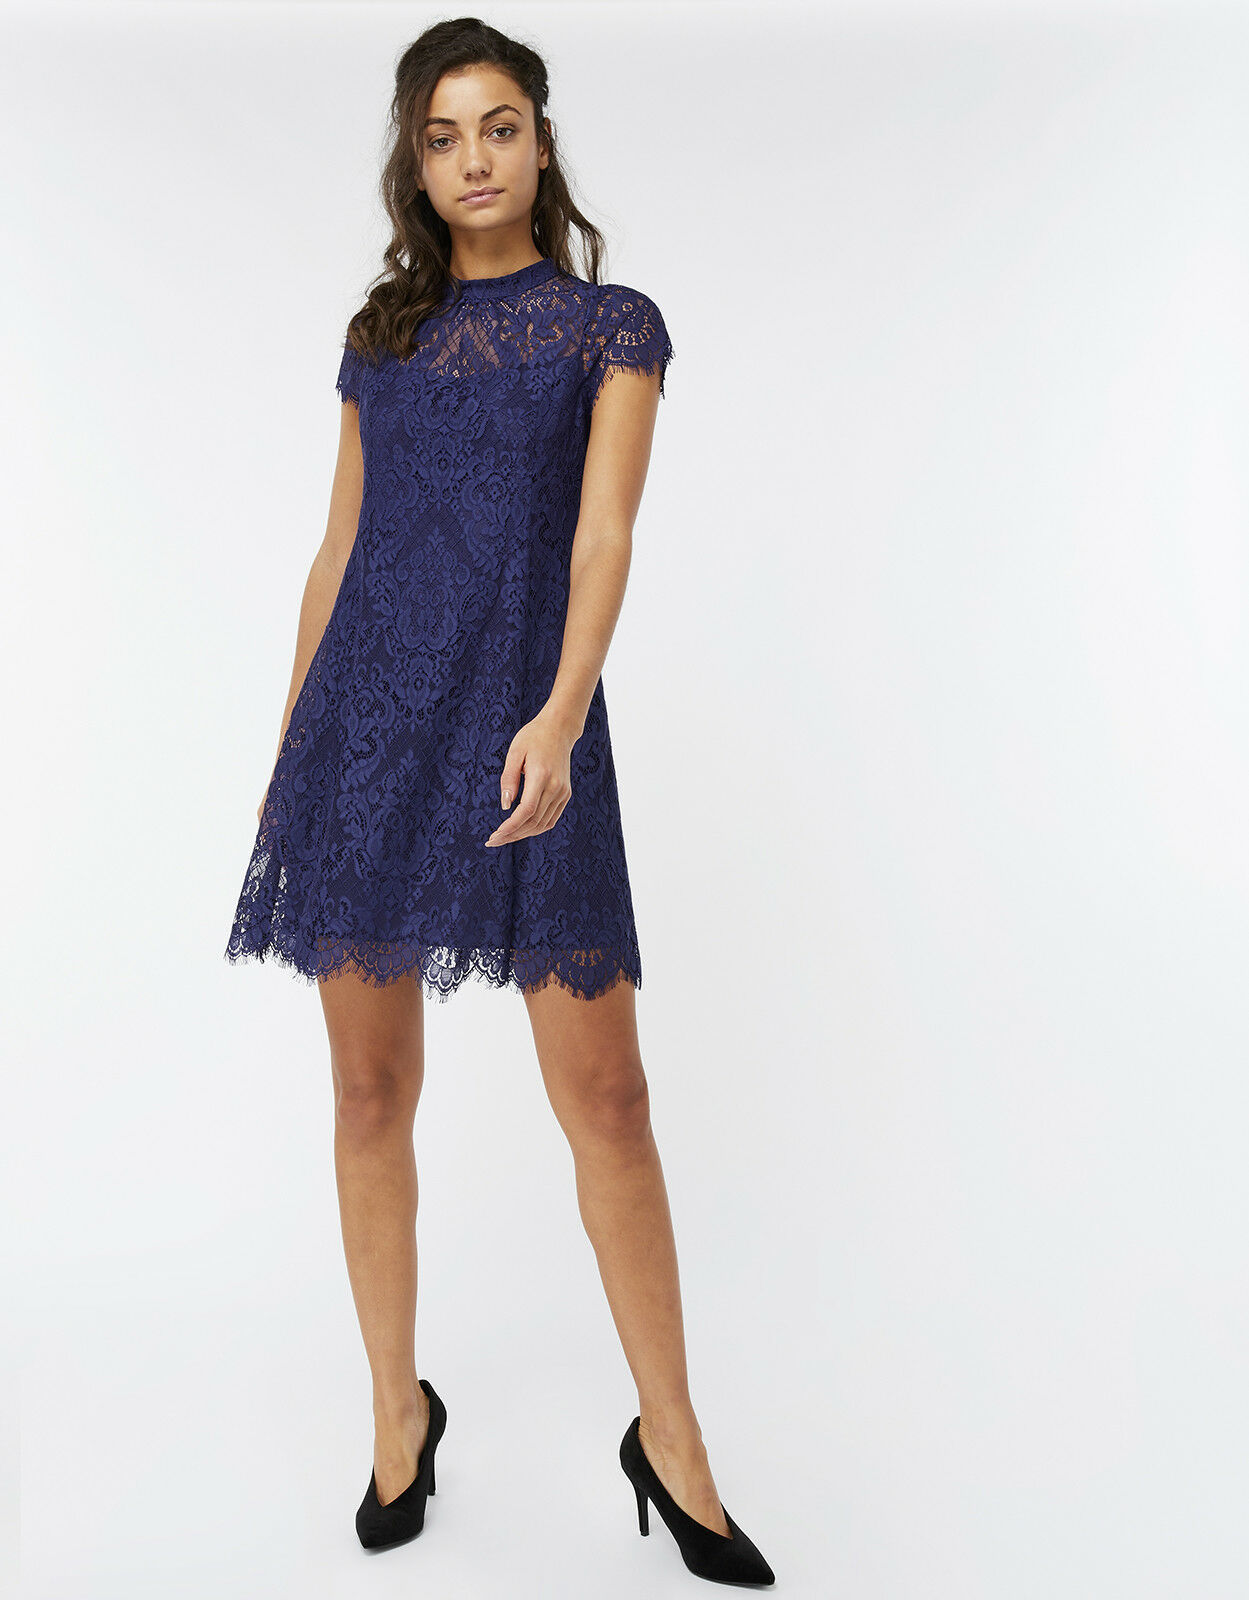 Nuovo Monsoon Monsoon Monsoon Nellie Cobalt blu Lace Dress Sz 14 Feste Nozze Cruise 1 9e079d